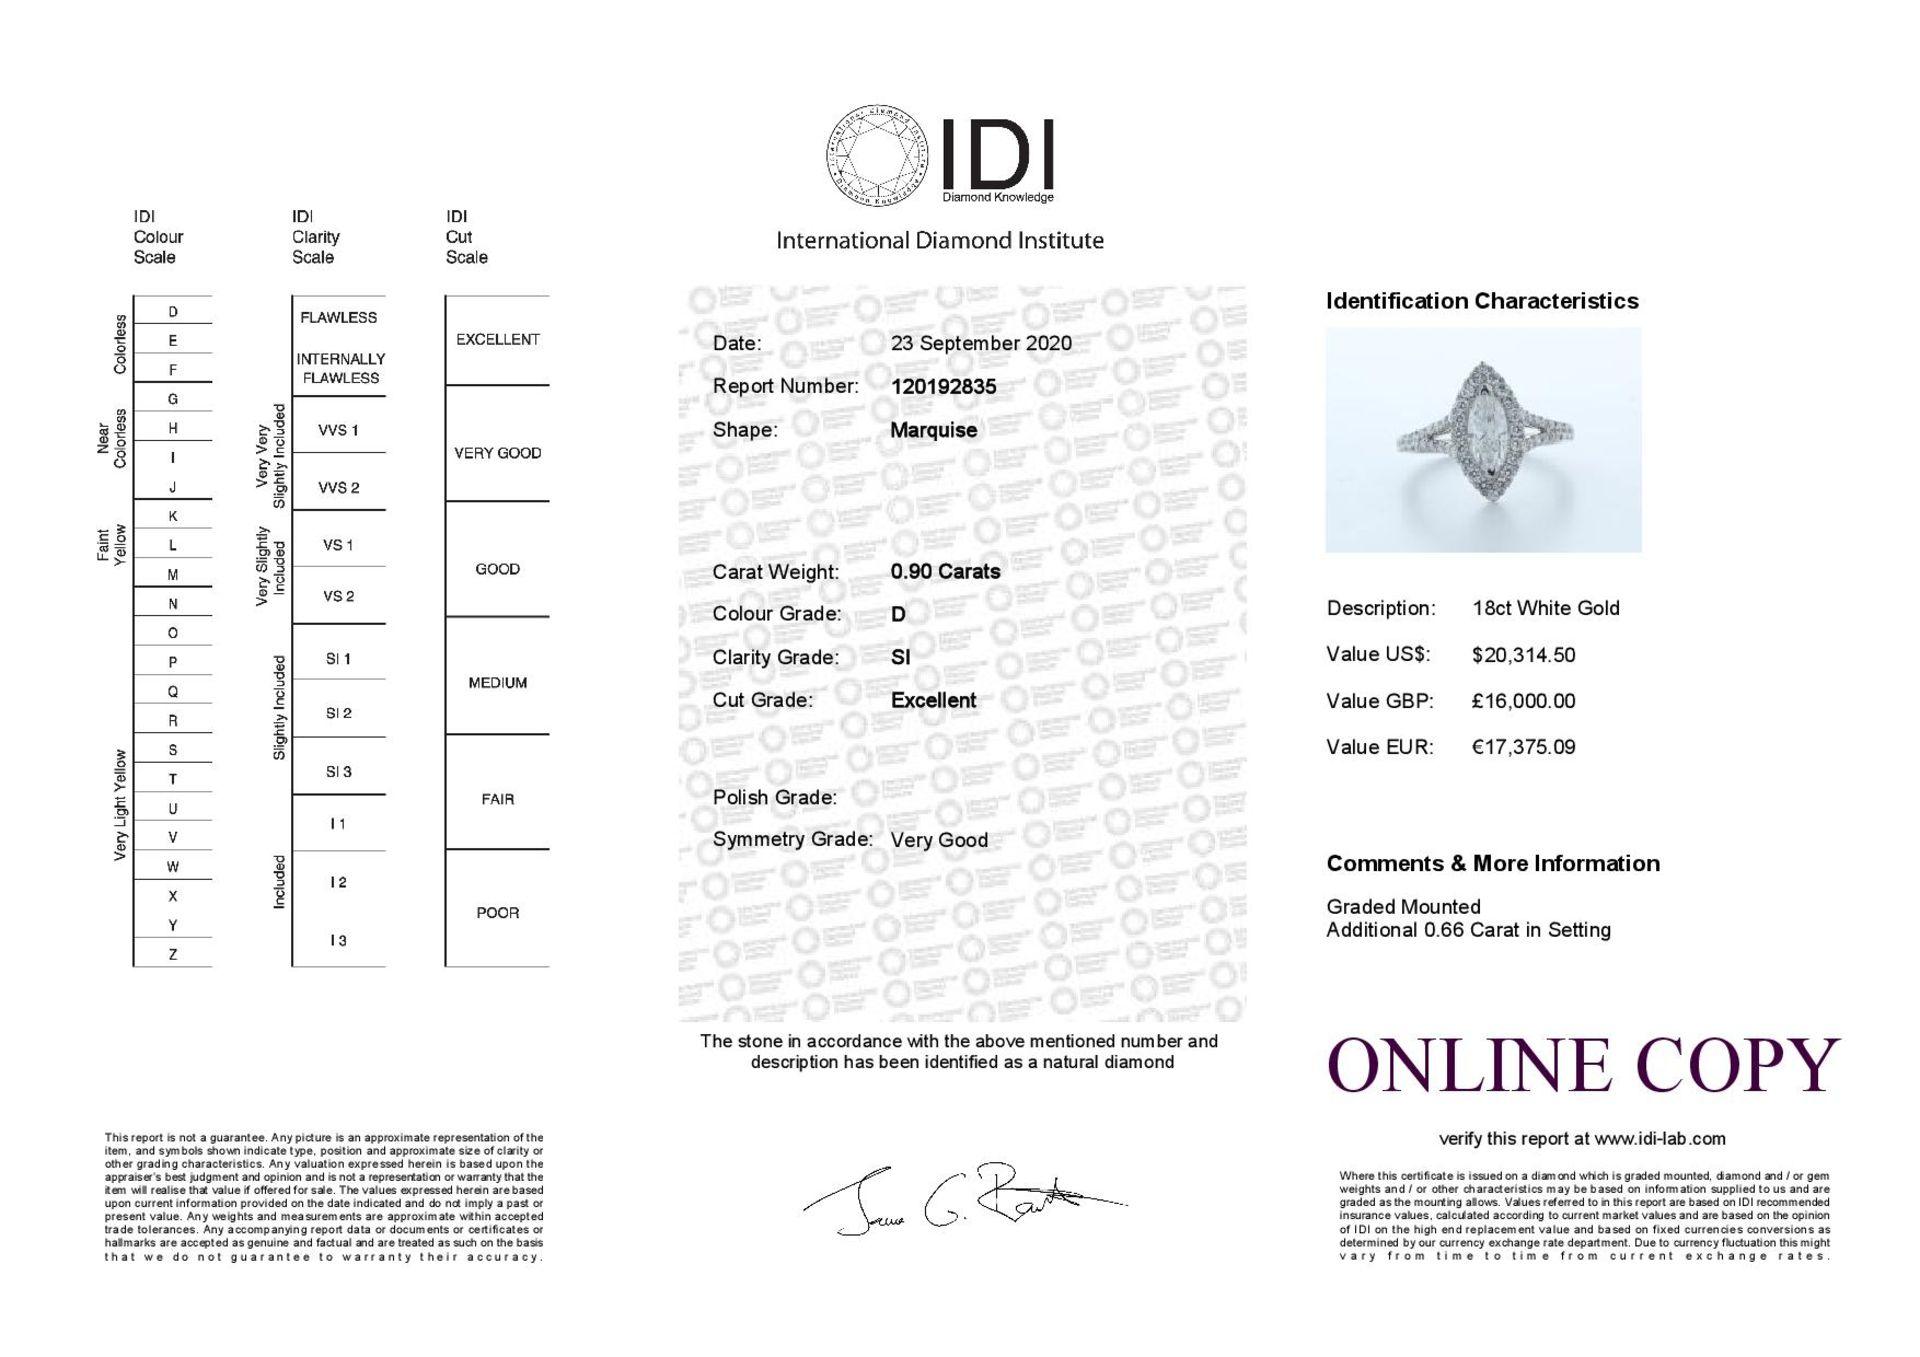 18ct White Gold Single Stone With Halo Setting Ring 1.56 (0.90) Carats - Valued by IDI £16,000. - Image 5 of 5